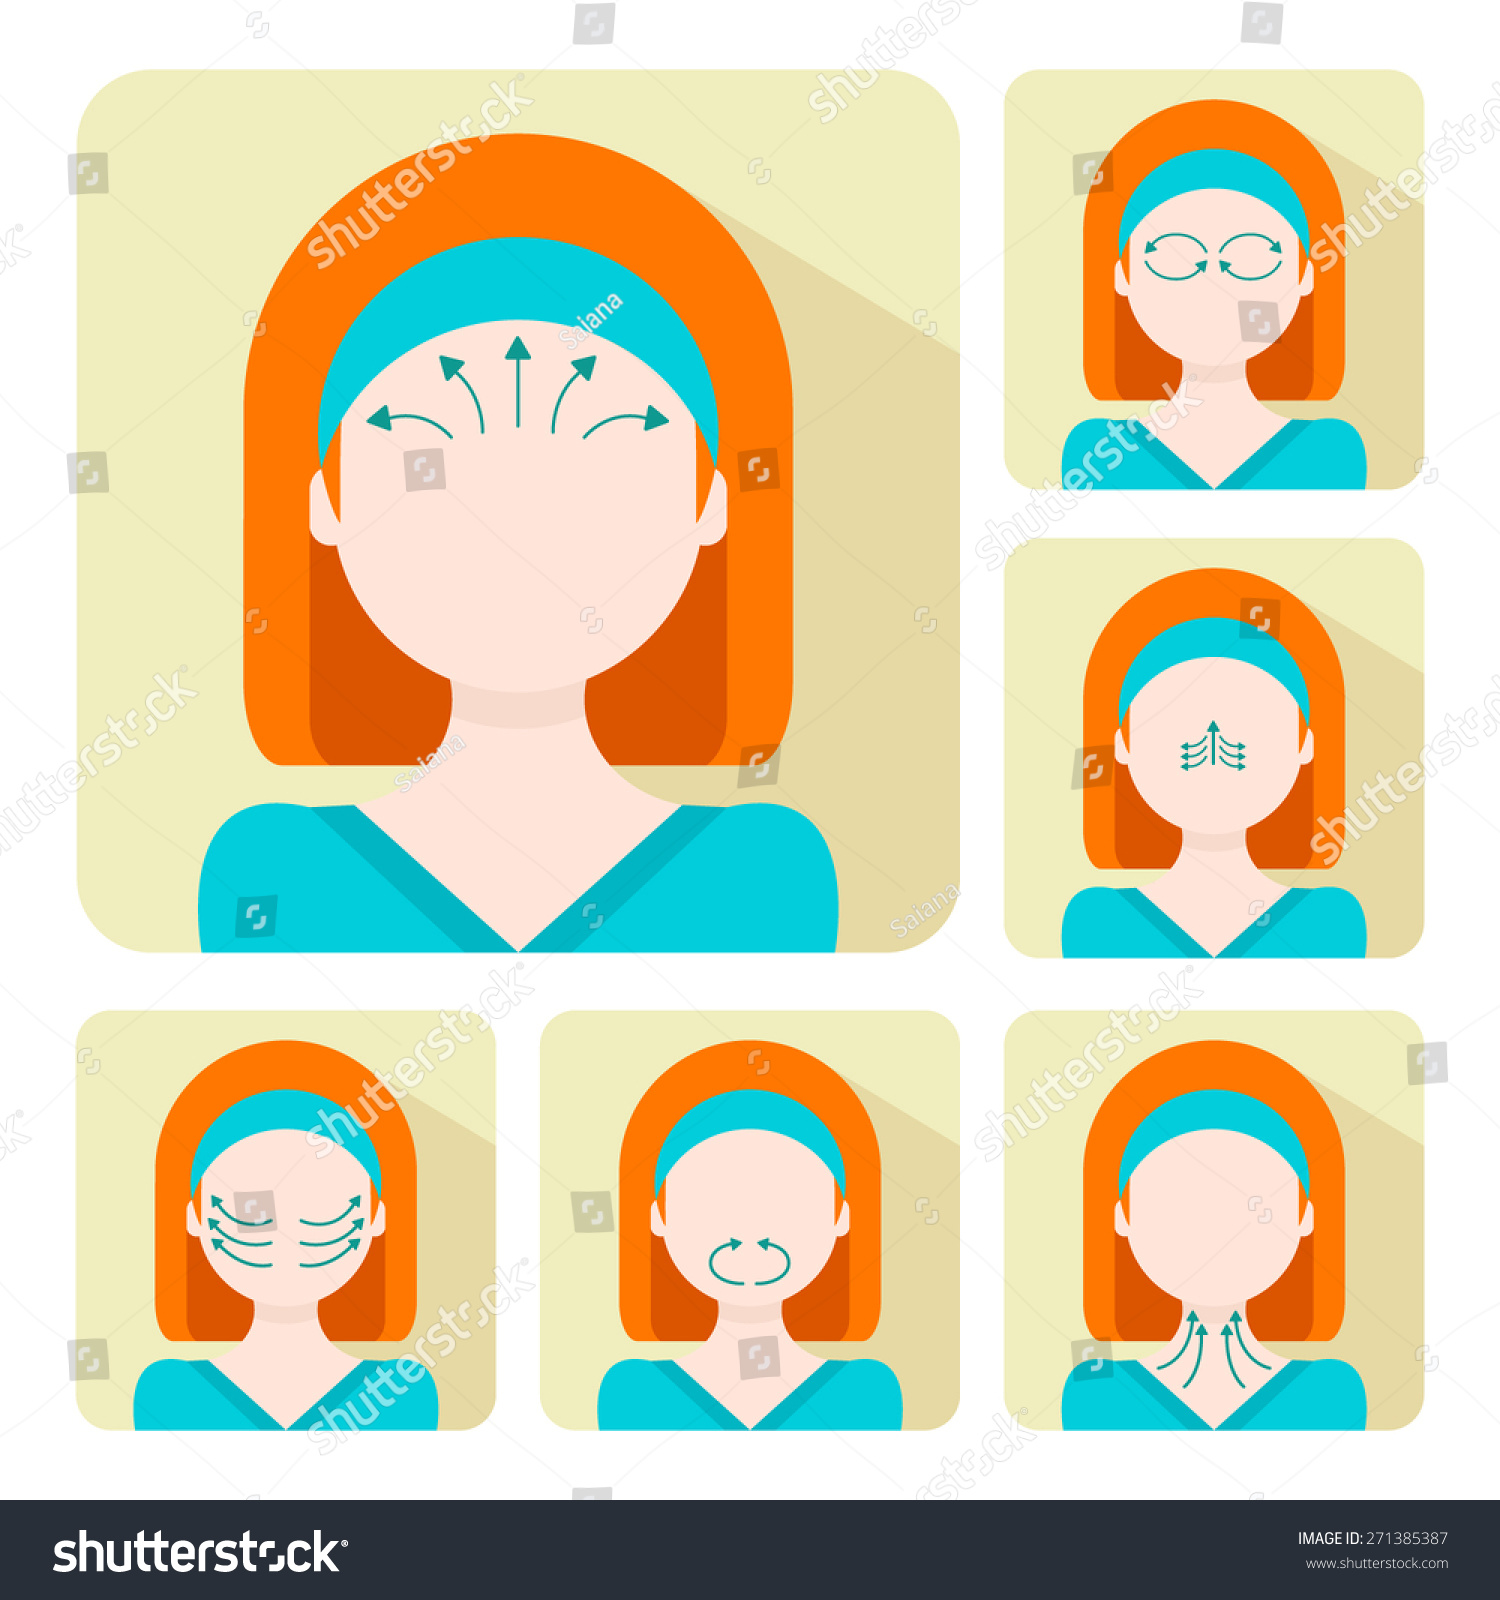 Vector Flat Illustration On Stickers Set Stock Vector Royalty Free